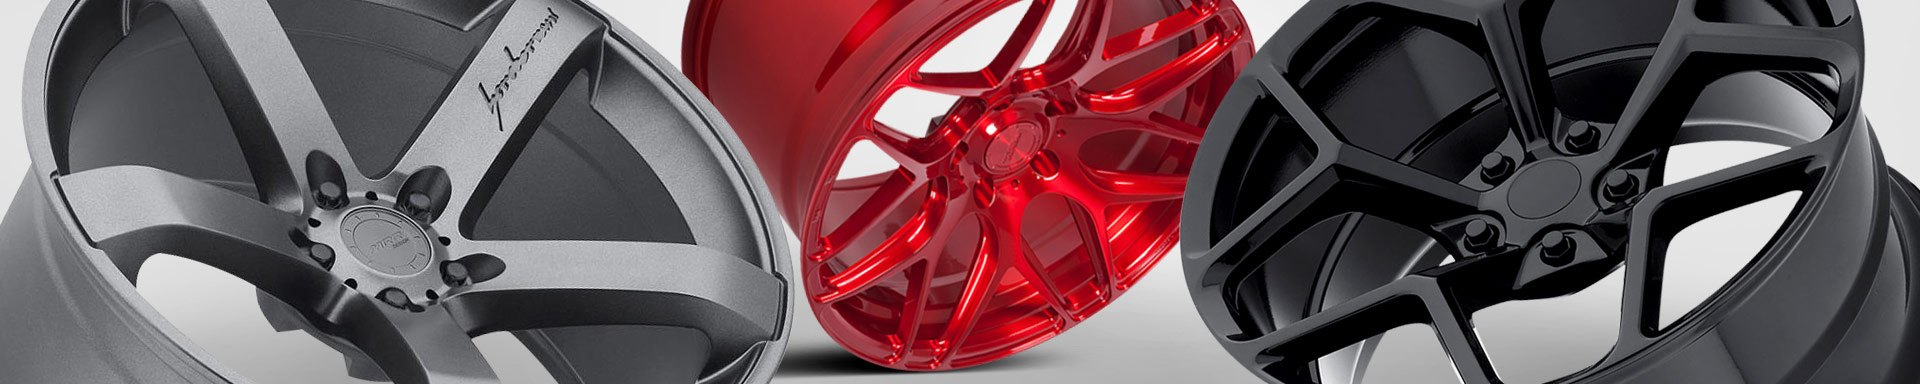 Universal MRR WHEELS & RIMS